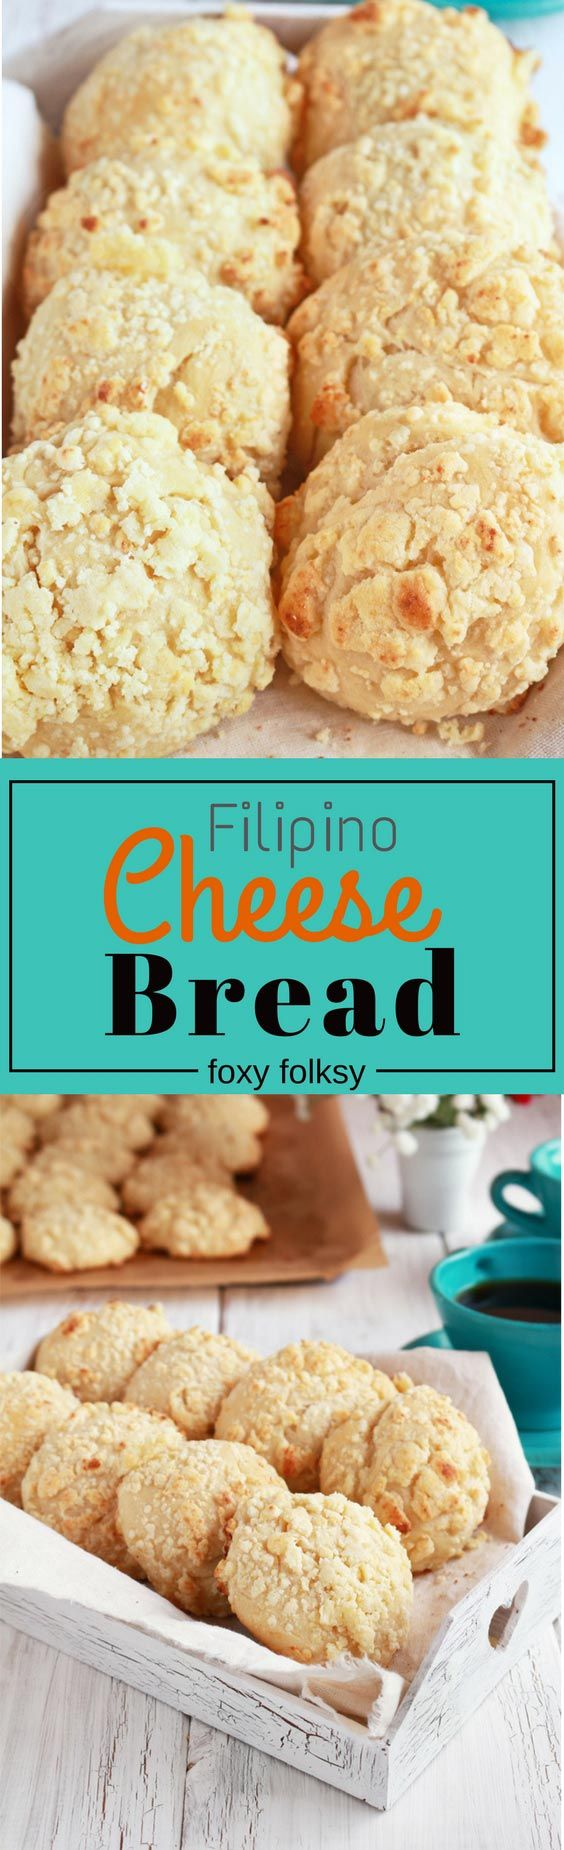 Filipino Cheese Bread is popular breakfast or afternoon snack. It is sweet and milky unlike other cheese bread there is! | www.foxyfolksy.com #recipe #asianfood #filipinofood #baking #recipe #snack #cheese